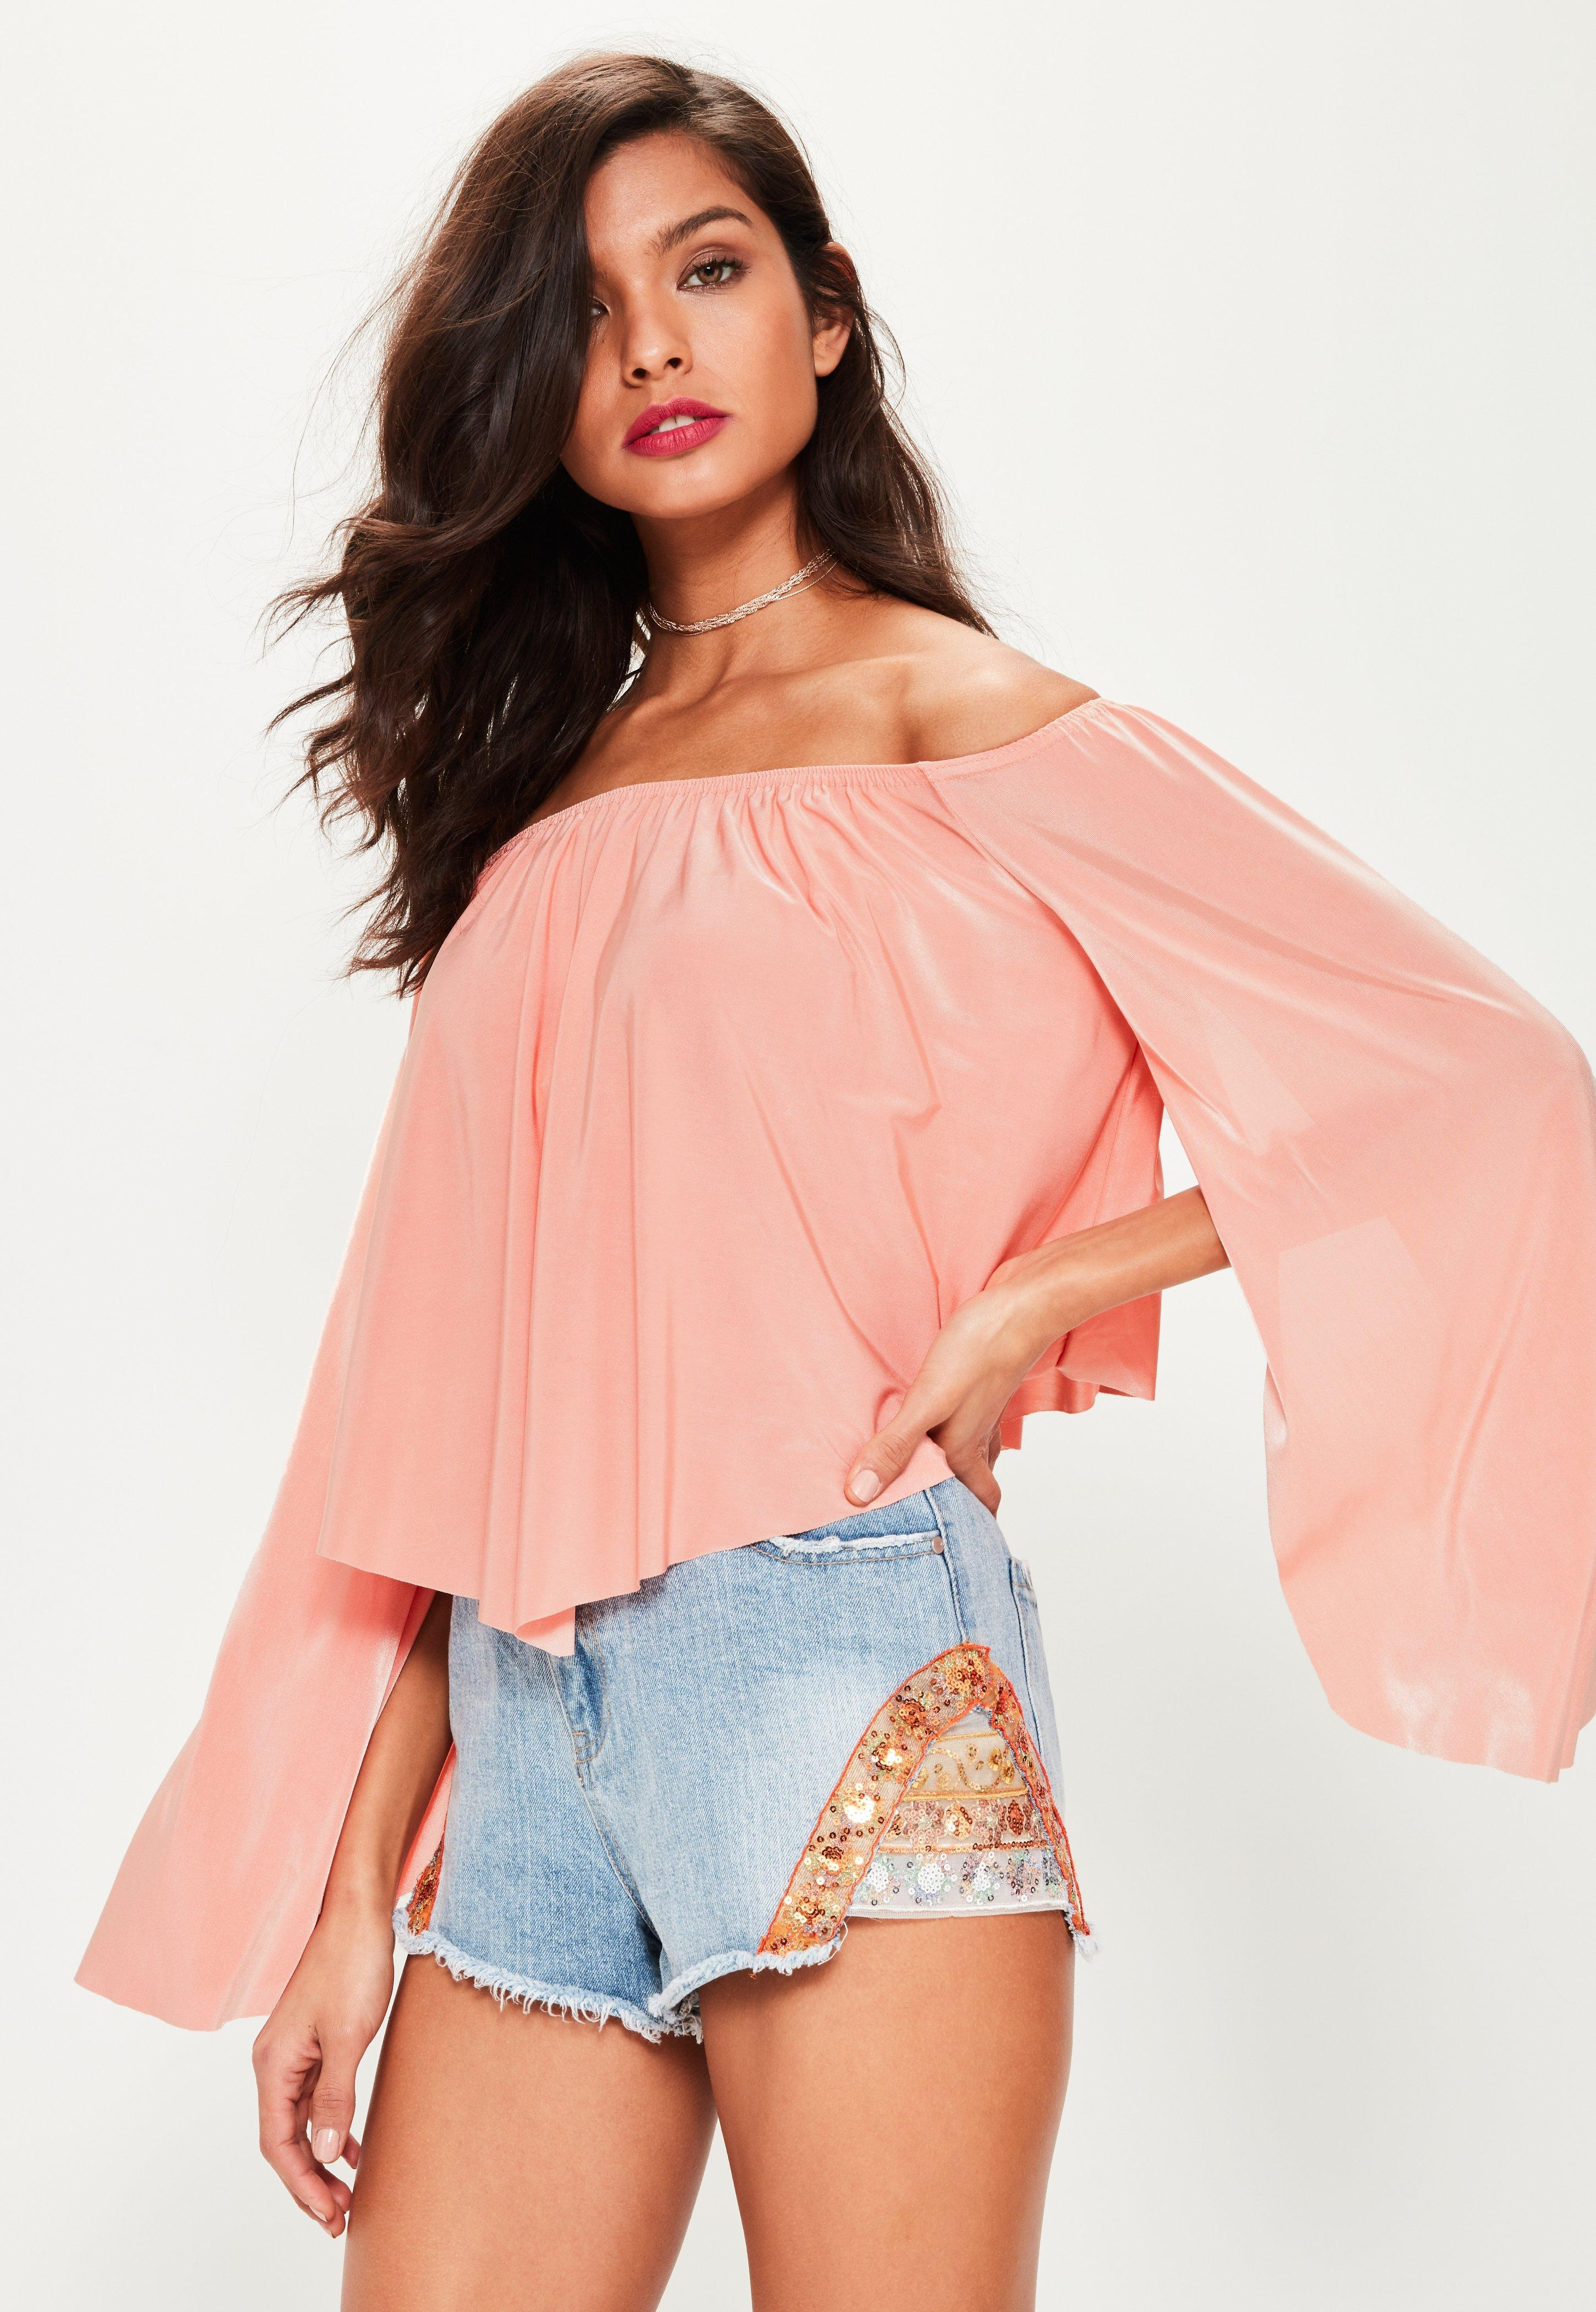 ea960372270df1 Lyst - Missguided Pink Slinky Bardot Flare Sleeve Top in Pink